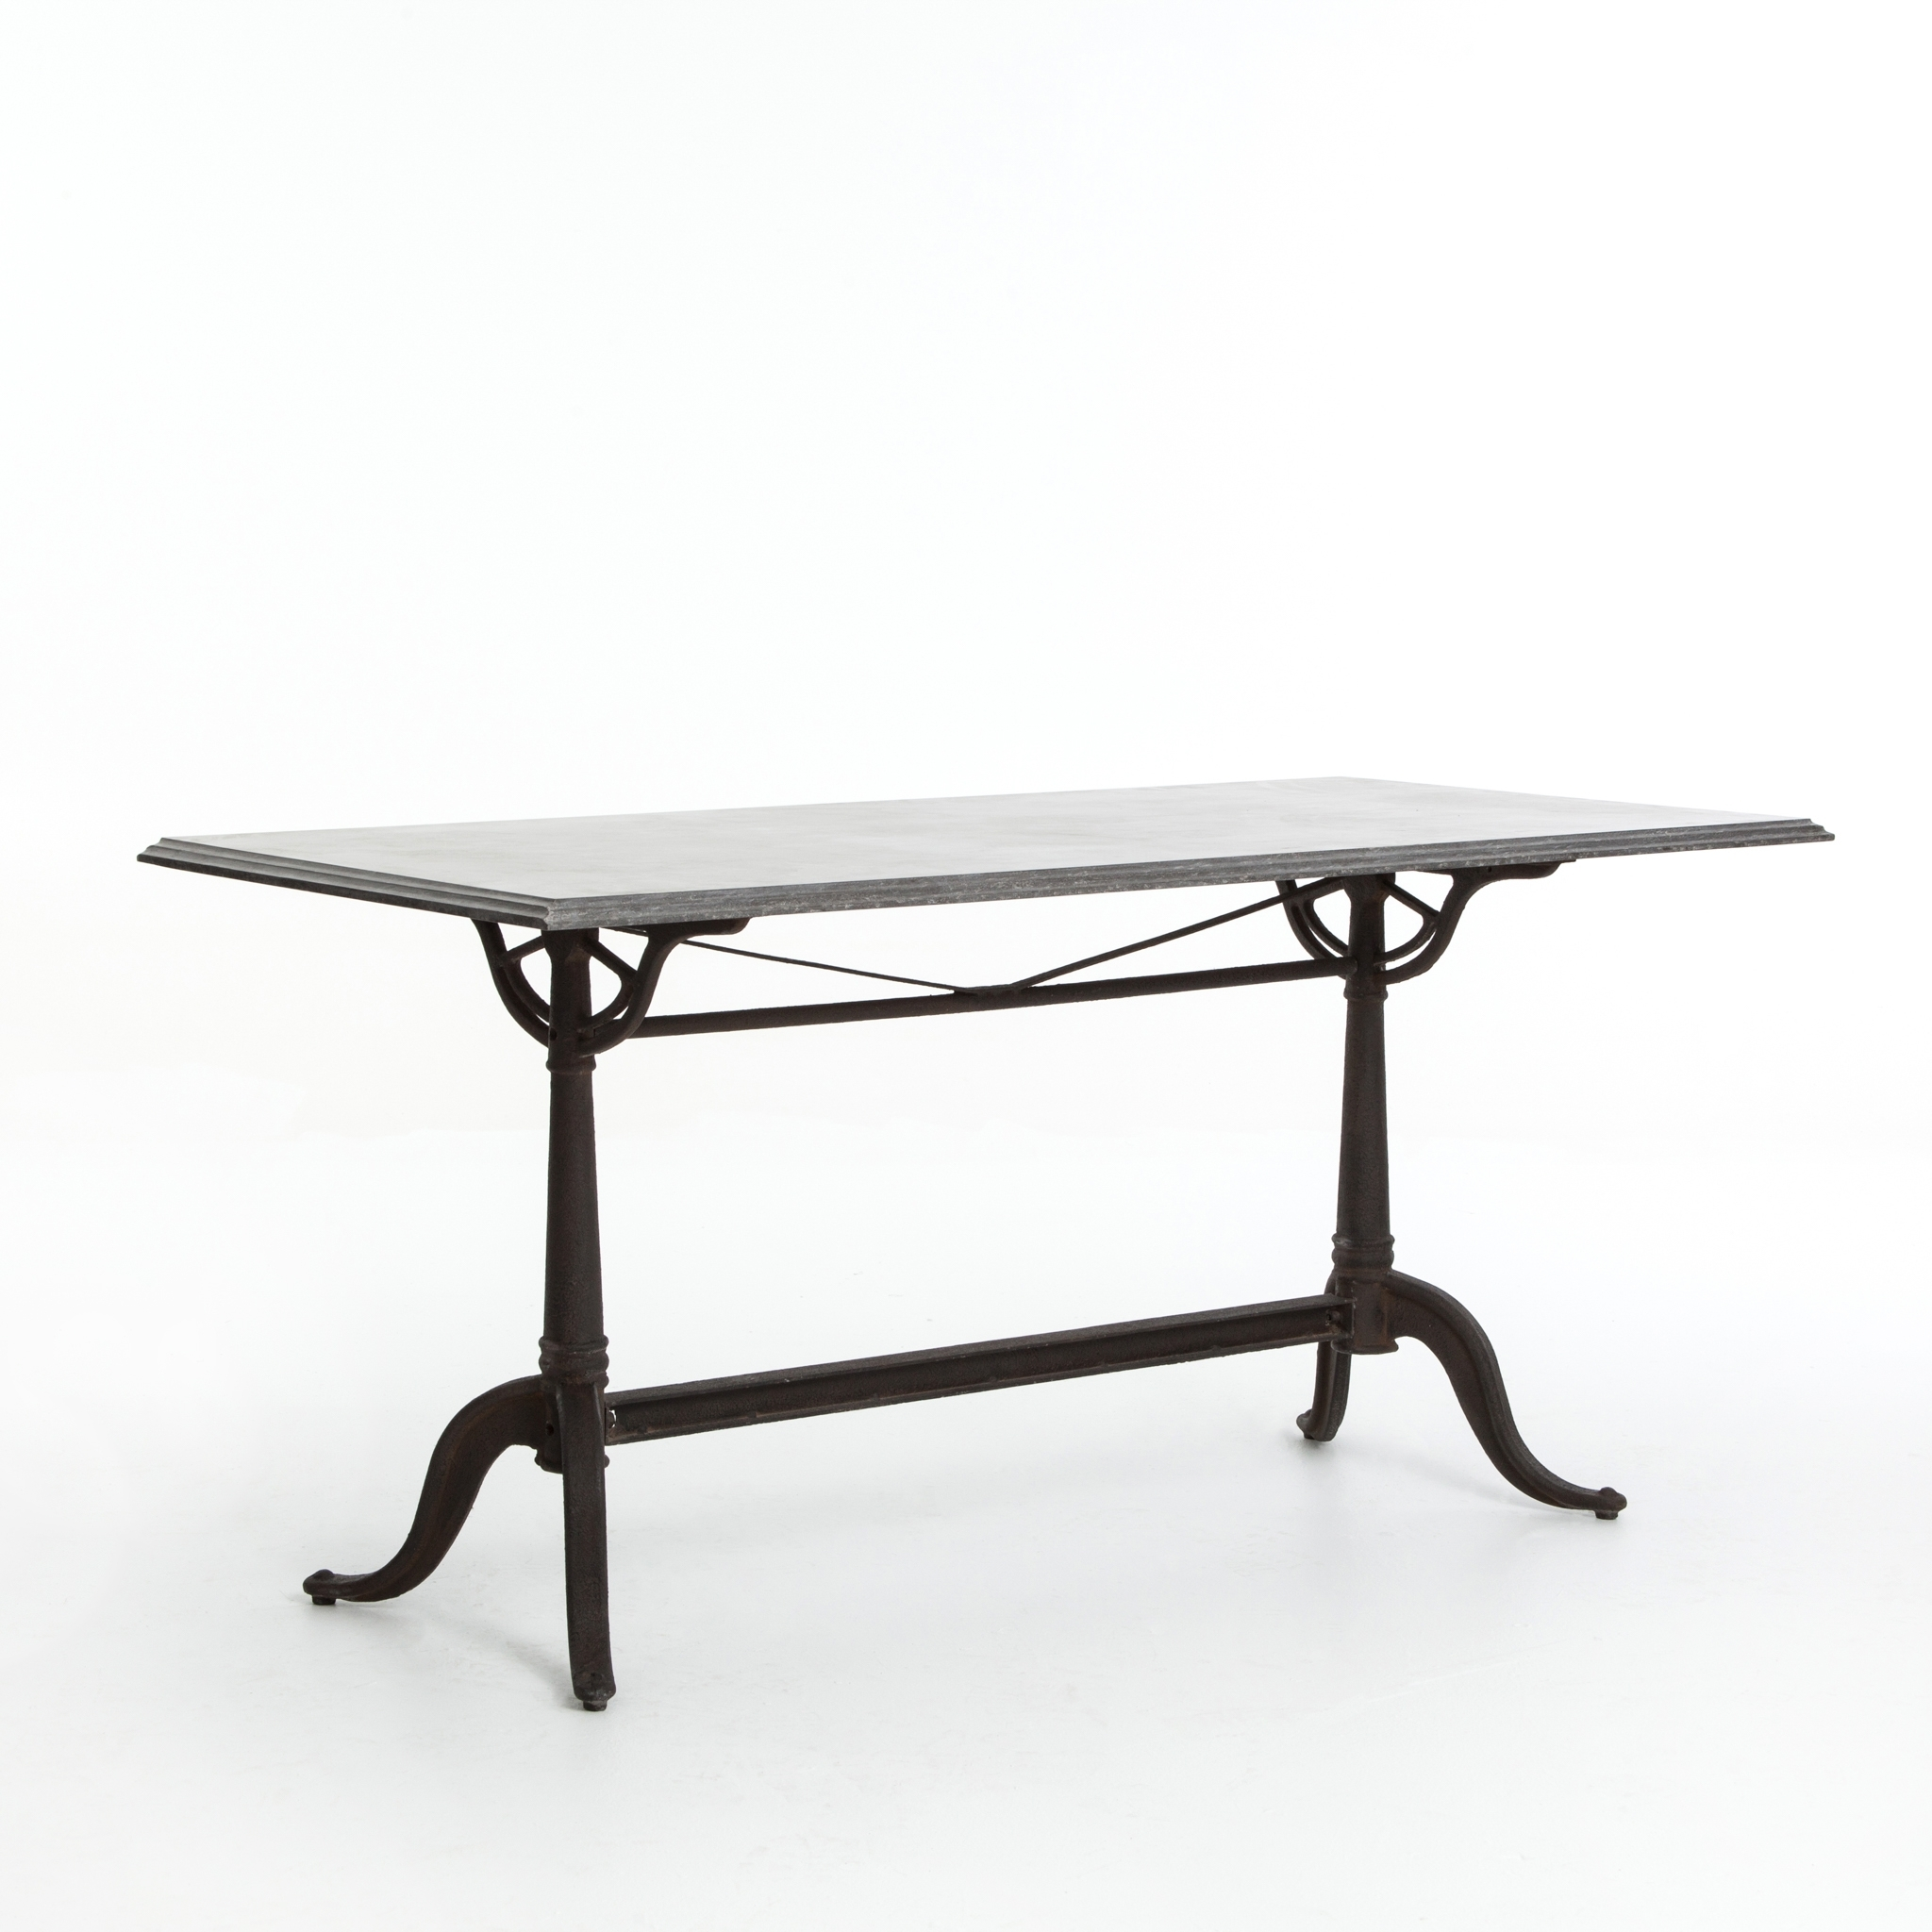 "Well Known Bluestone Rustic Black Coffee Tables Throughout 64"" L Orson Dining Table Iron Bluestone Rustic Brown Spectacular (View 19 of 20)"